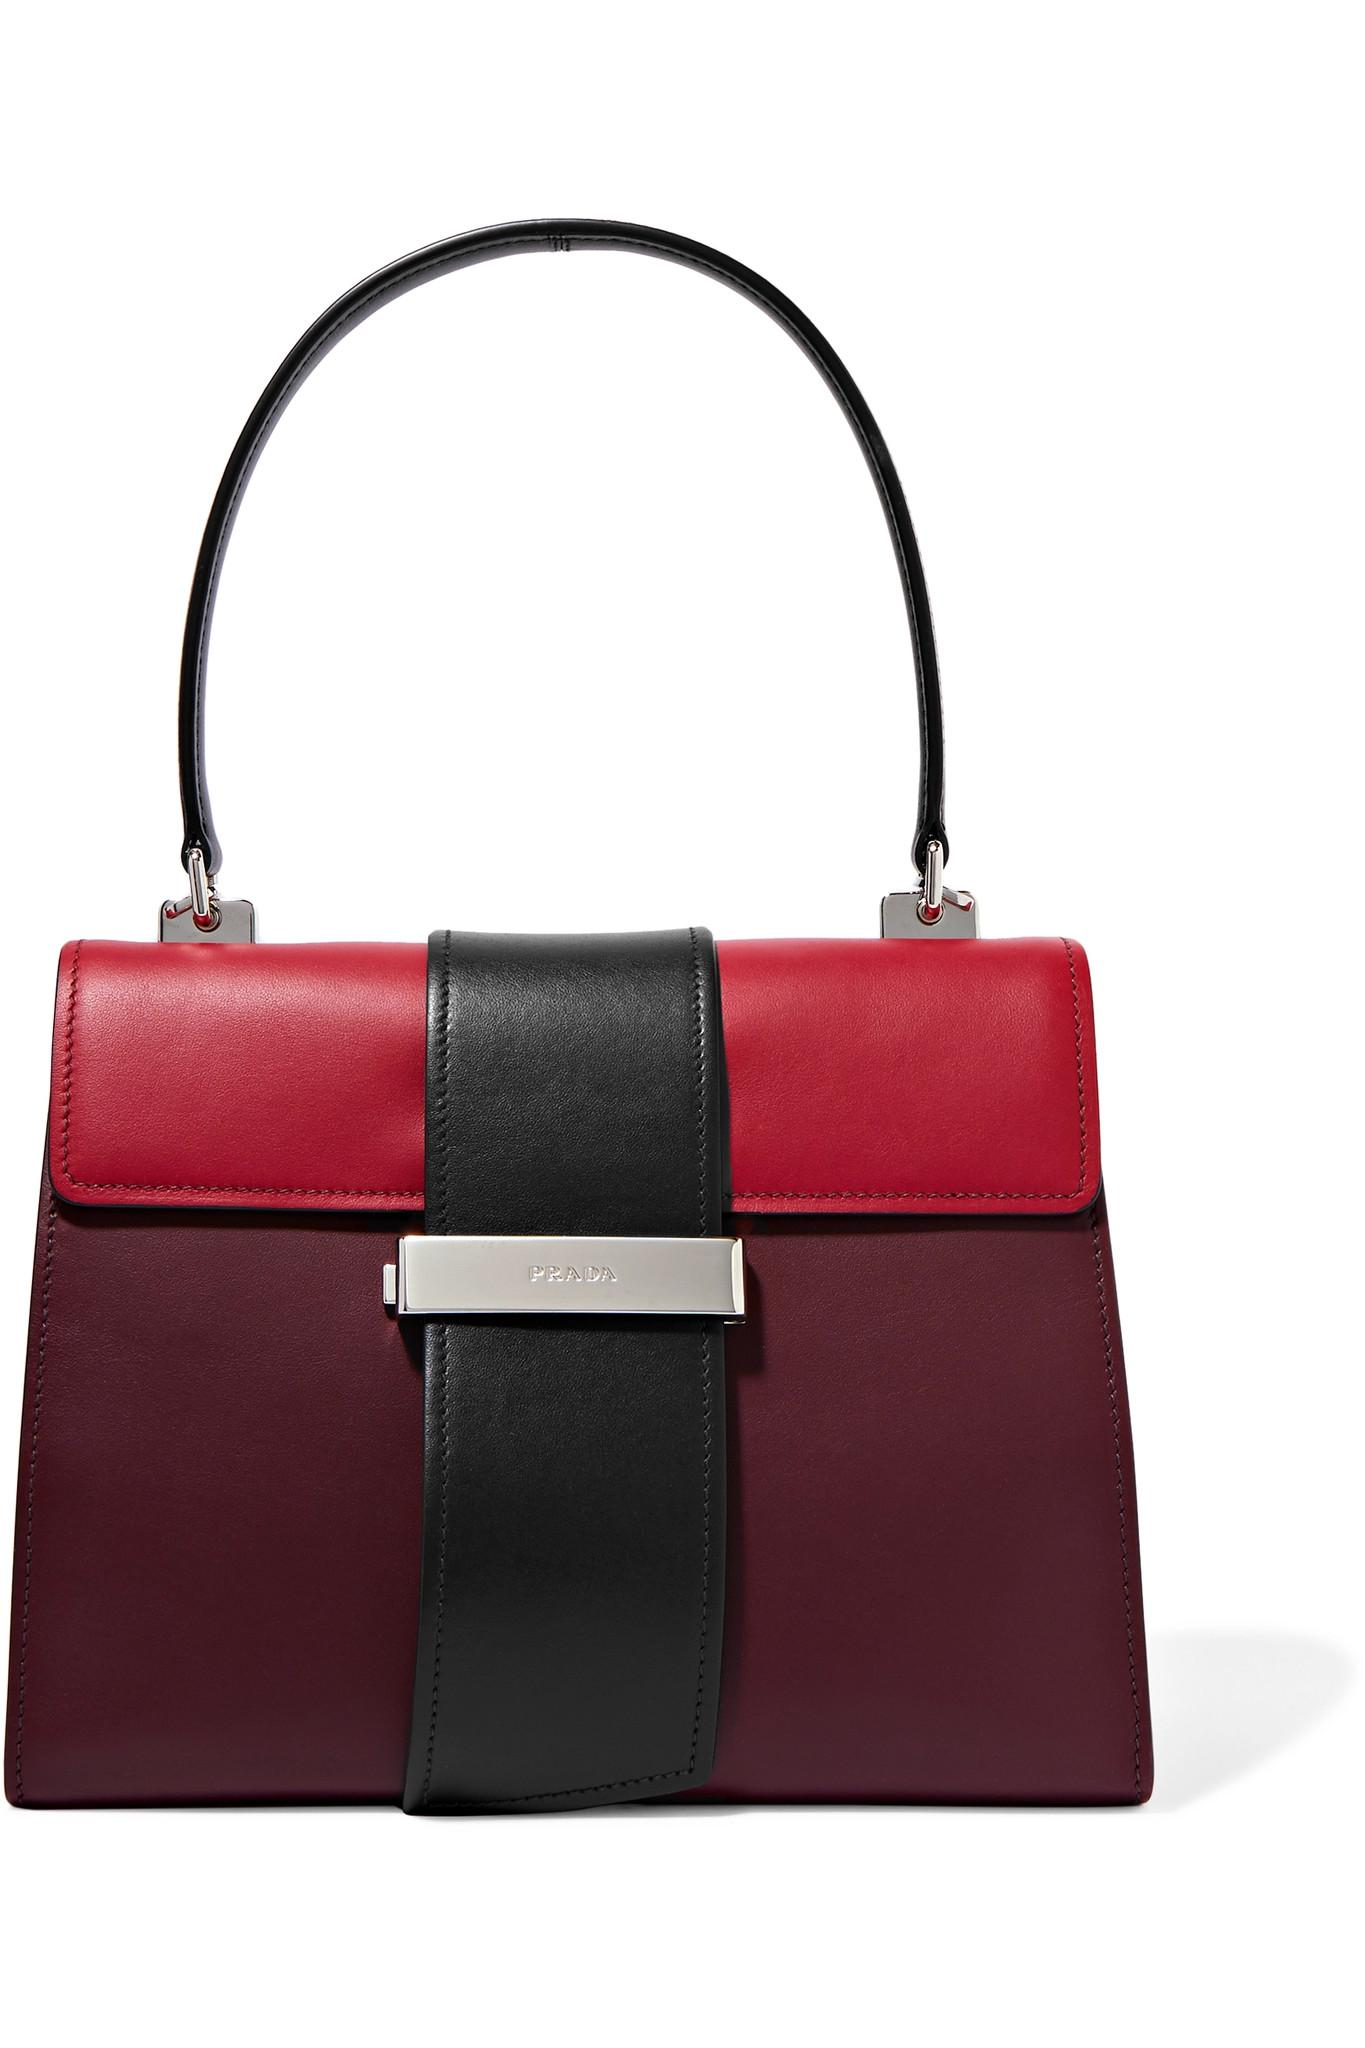 5ee1375d737ade Prada Metal Ribbon Color-block Leather Tote in Red - Lyst